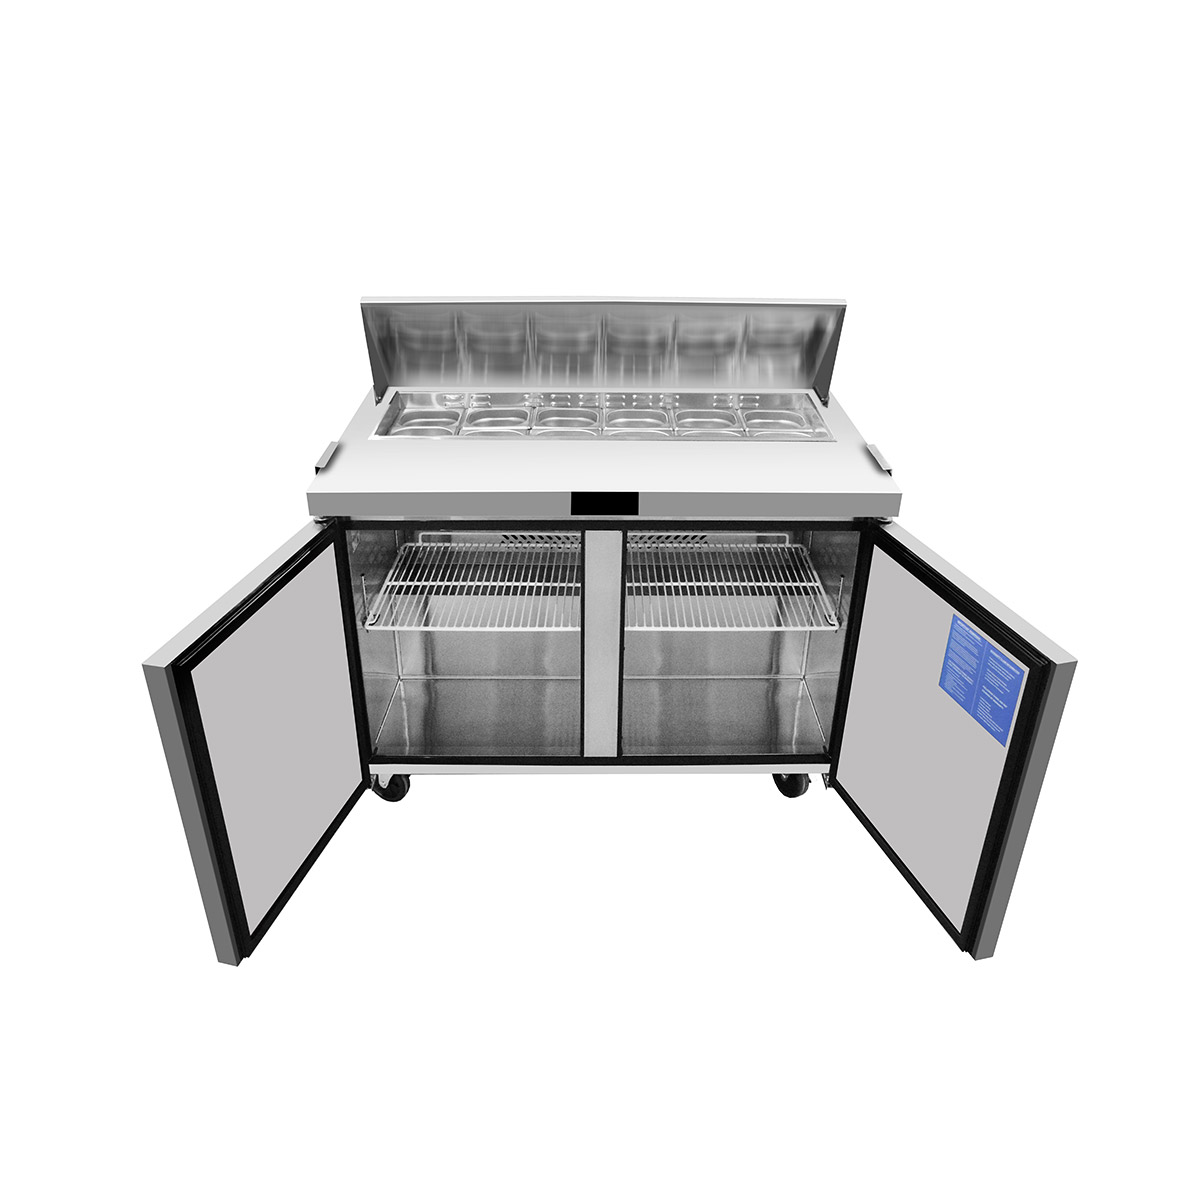 Atosa MSF8302GR Heavy Duty 2 Door Prep Counter 340 Litres with 6 x 1/3 GN pans